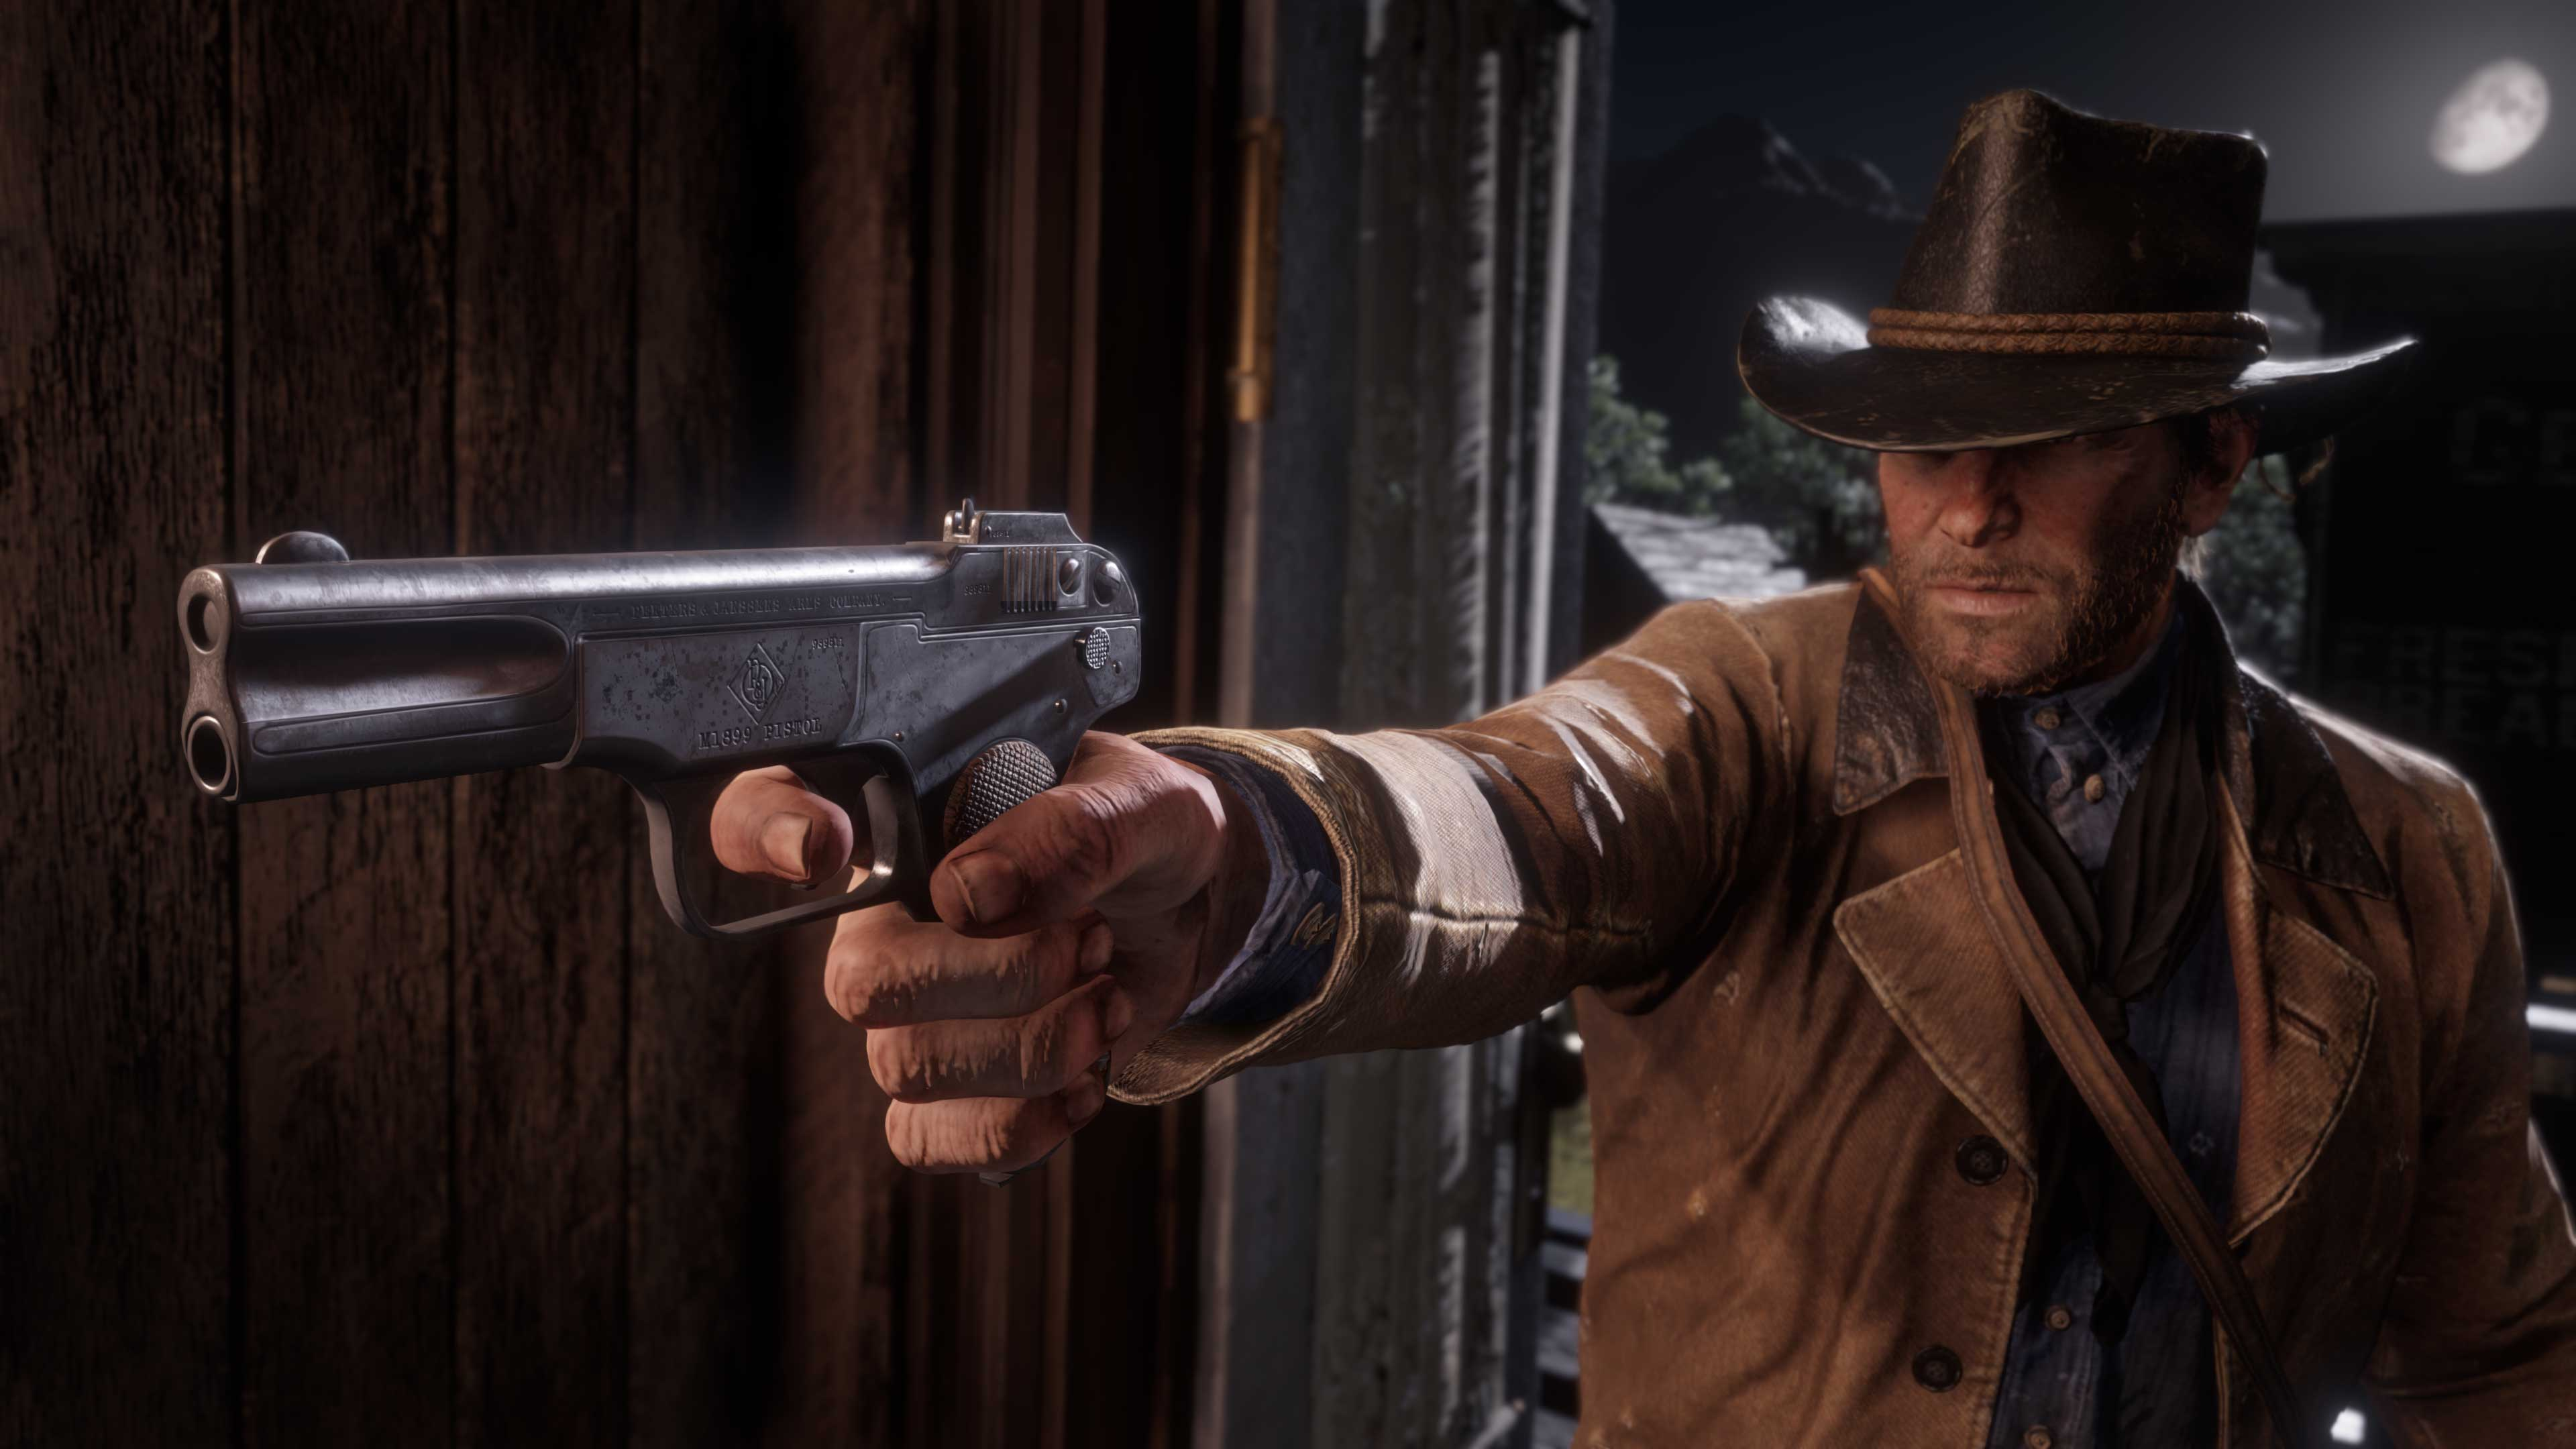 The Steam Awards: Red Dead Redemption 2 is 2020's game of the year